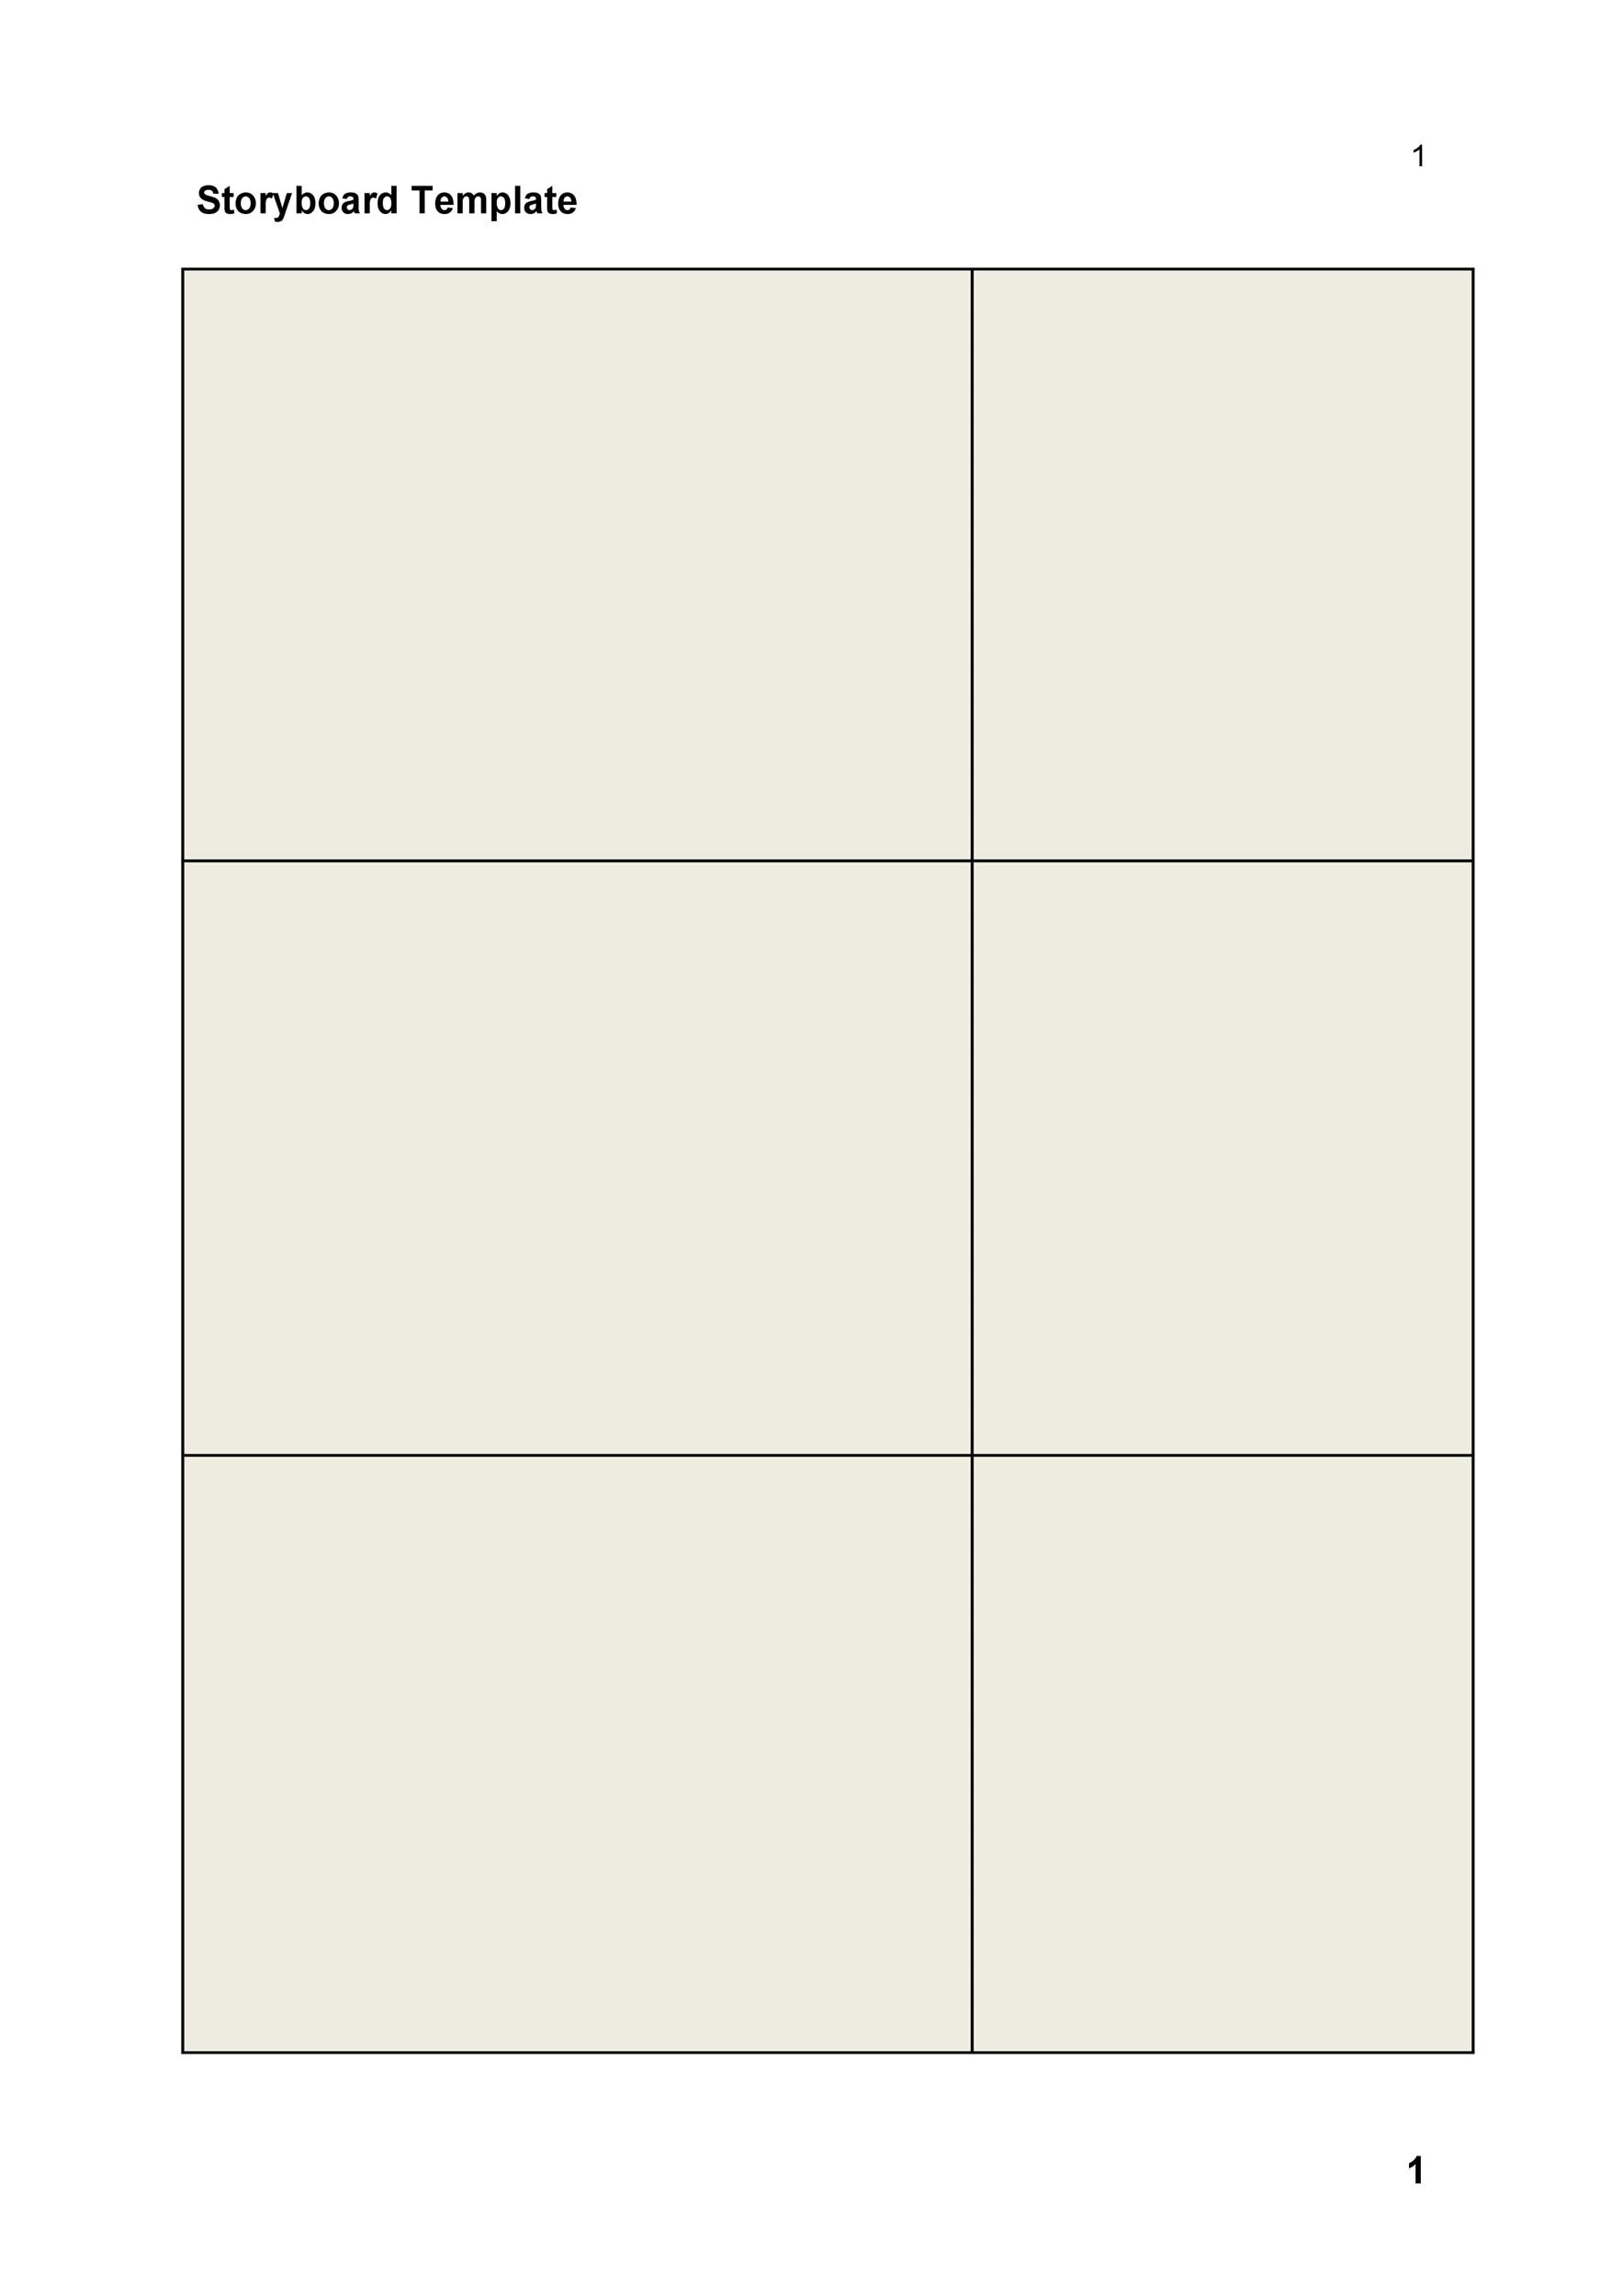 Professional Film Storyboard Template